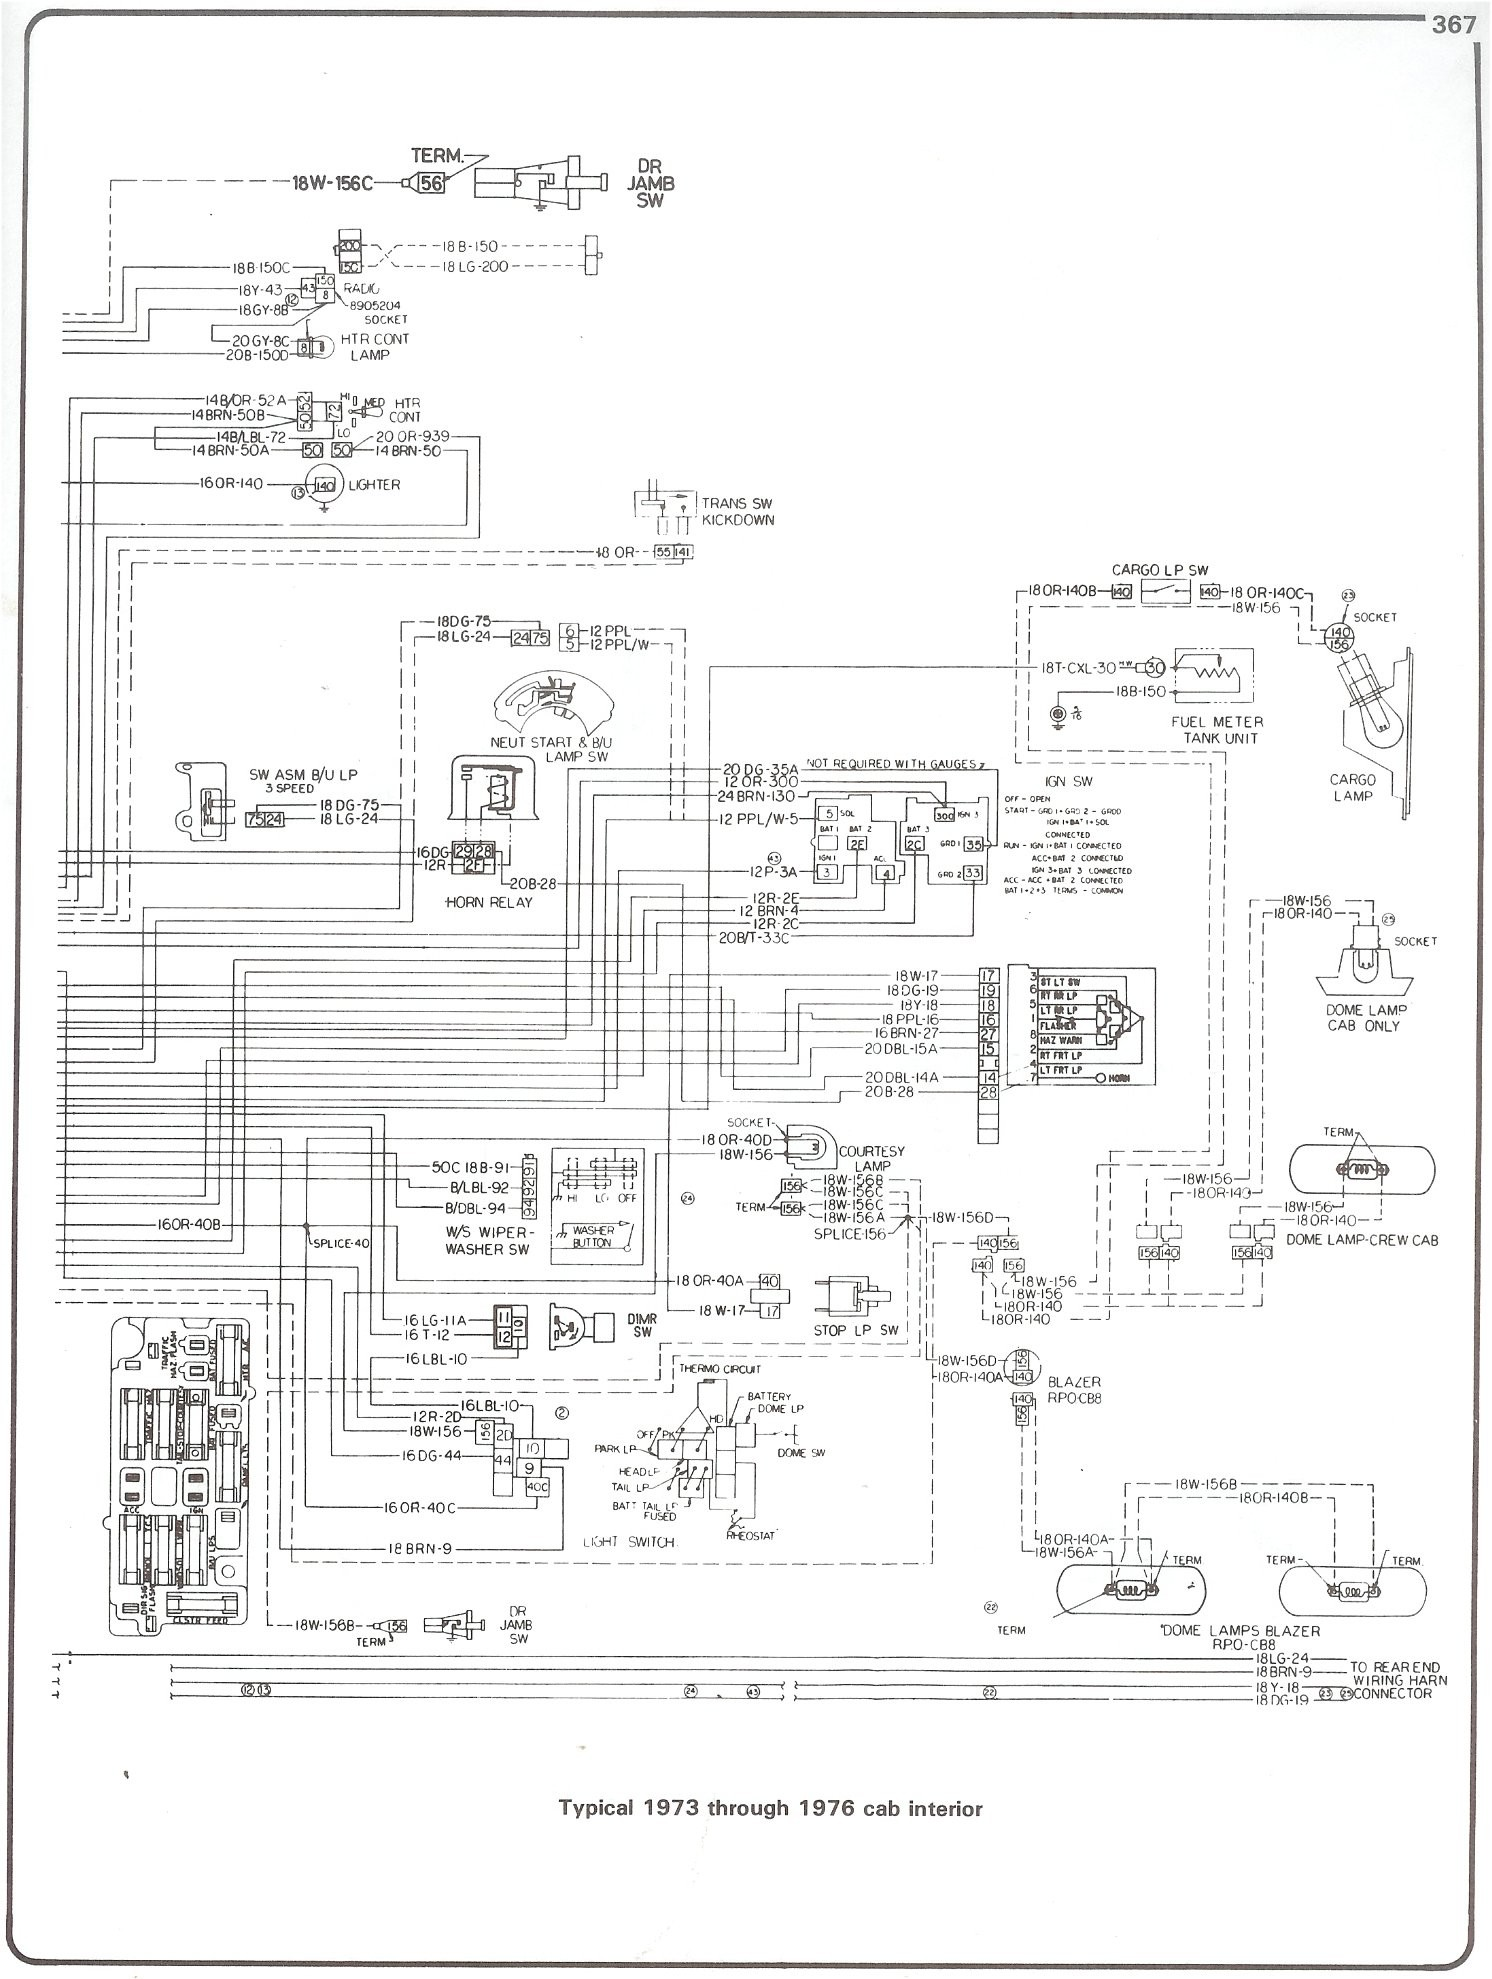 78 Chevy Truck Wiring Diagram Wiring Diagram 76 Chevy Truck Wiring Diagram Options Of 78 Chevy Truck Wiring Diagram 1976 Chevy Truck Wiring Schematic Wiring Diagram Options